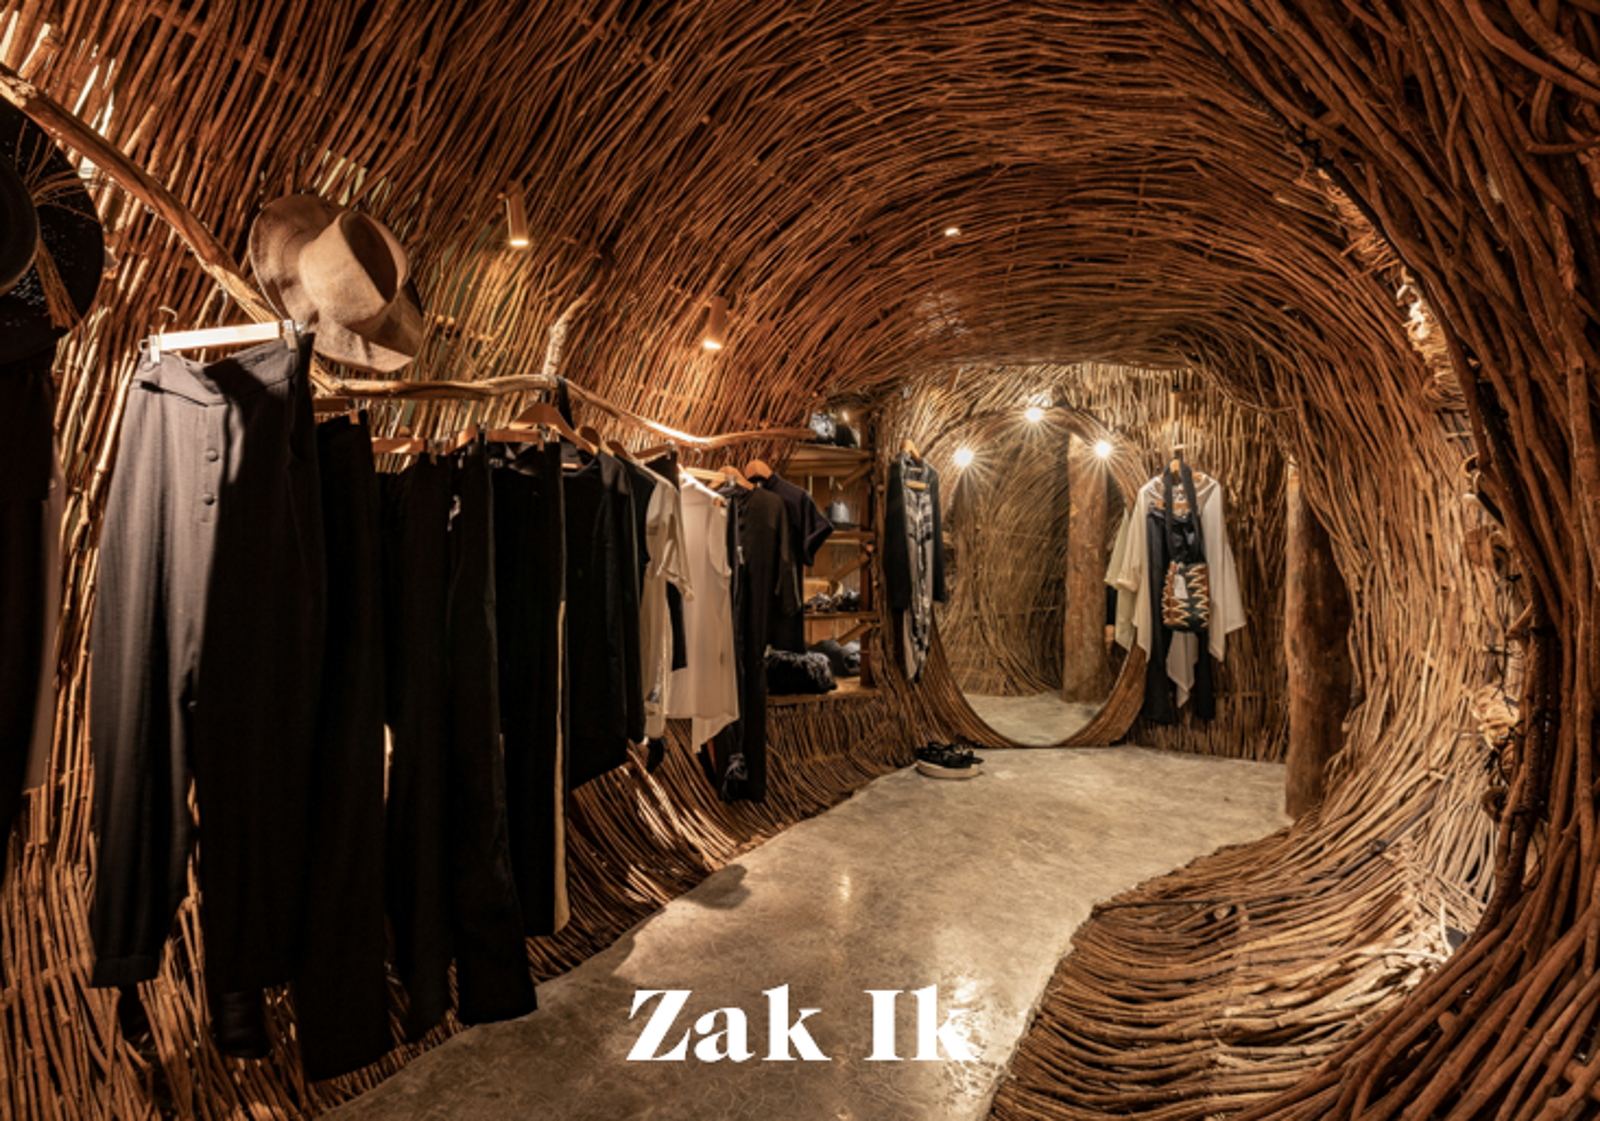 zak ik architecture store tour missions mmm